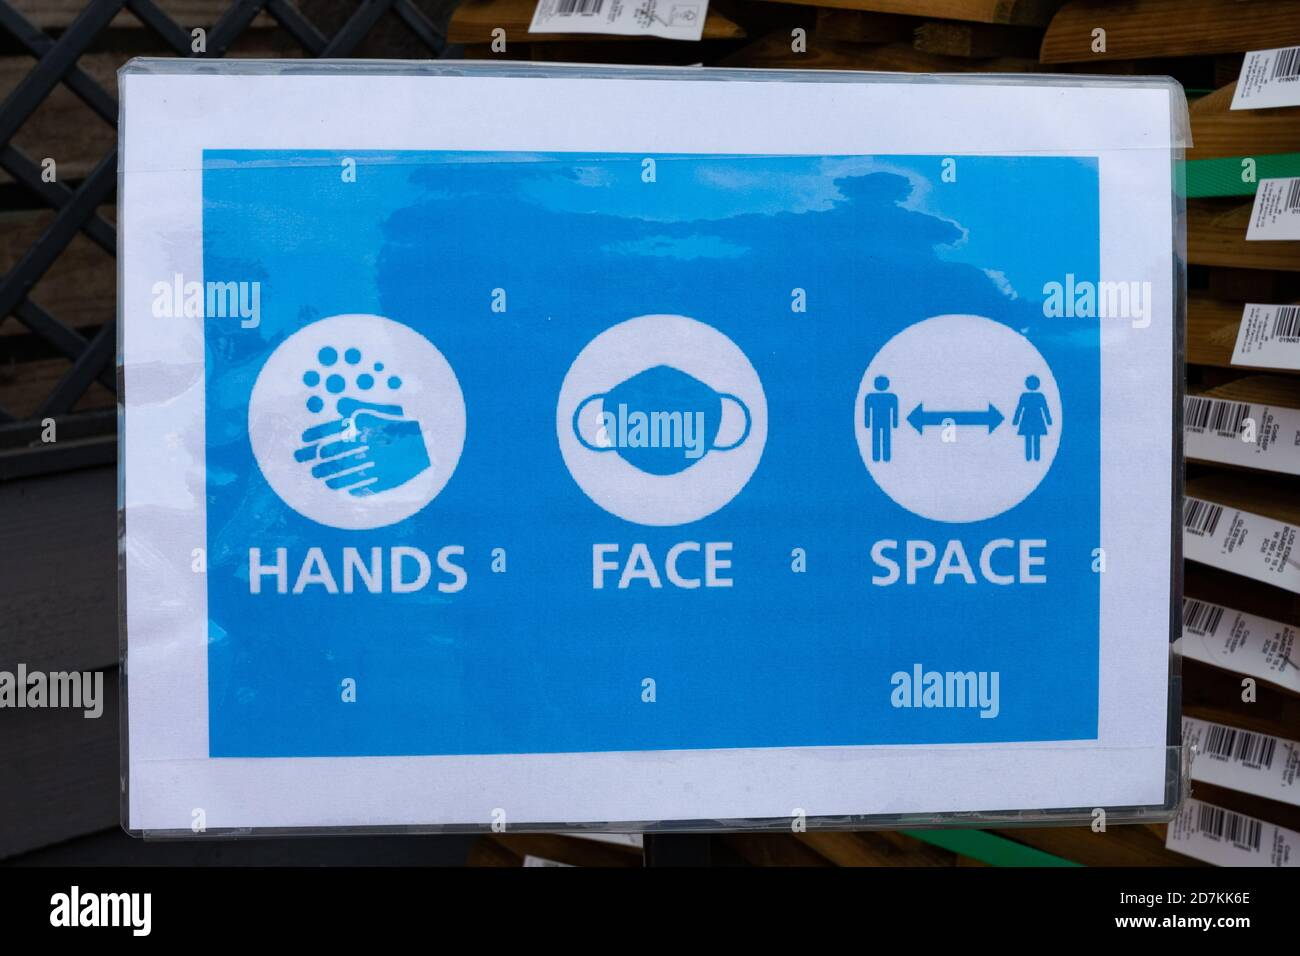 Hands Face Space slogan on notice or poster at a garden centre during the coronavirus covid-19 pandemic, October 2020 Stock Photo